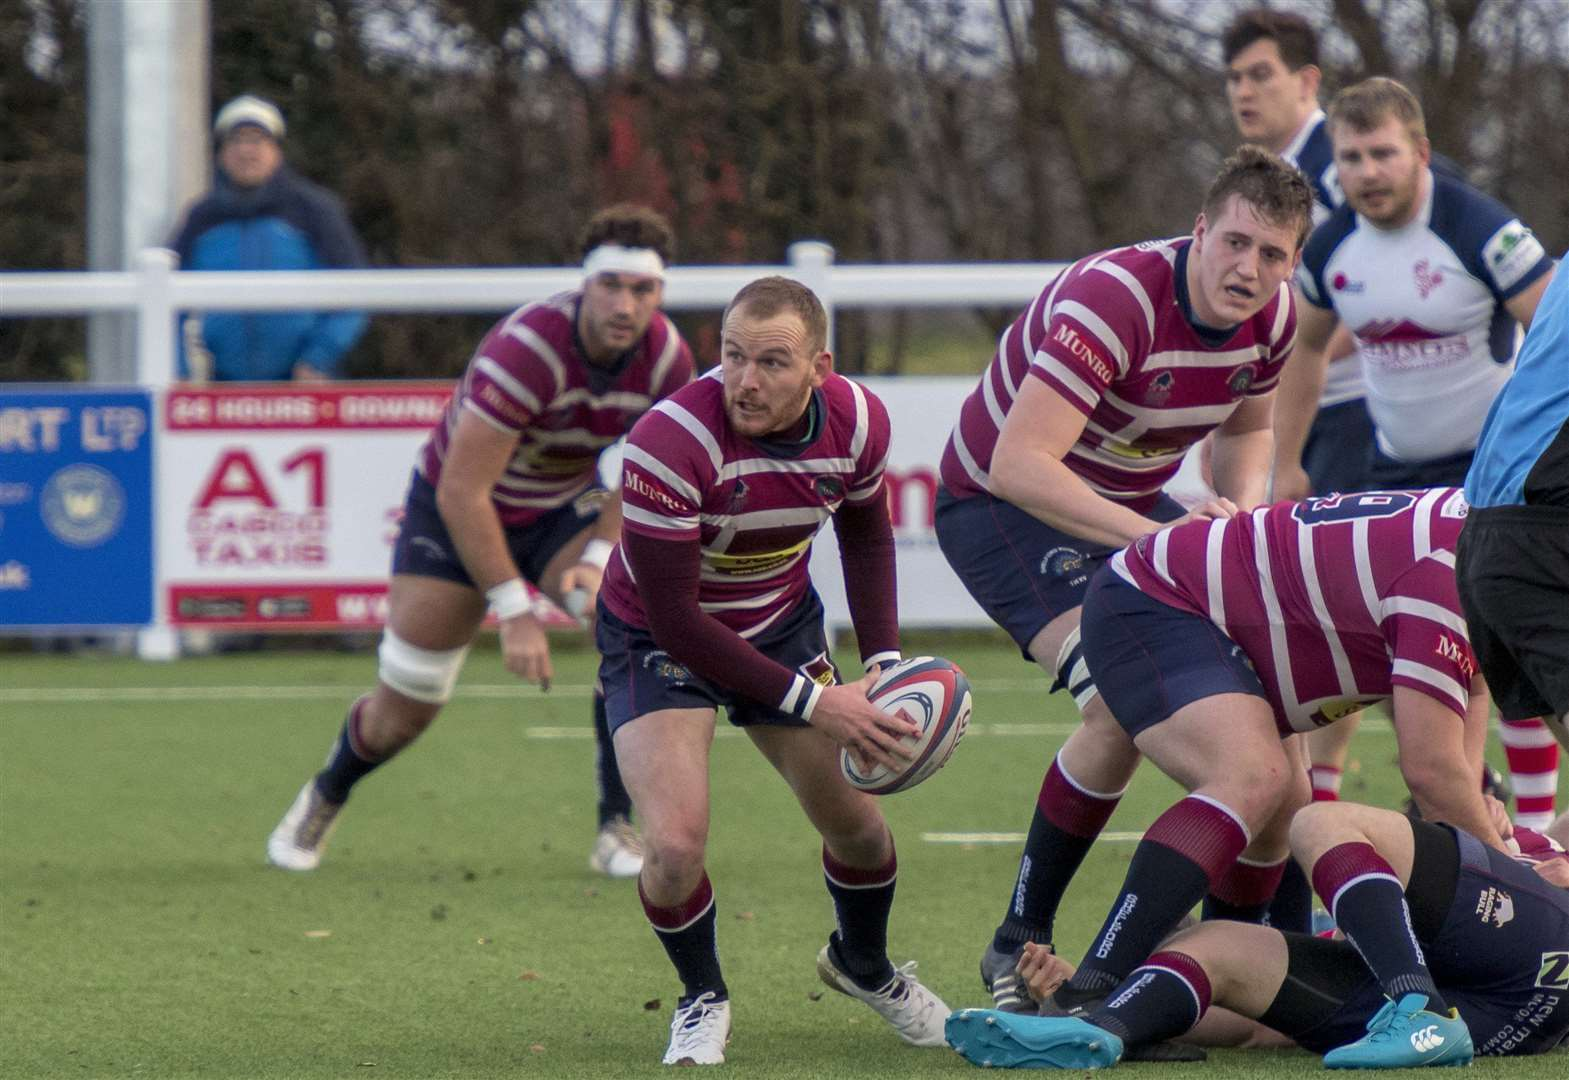 Two bonus points for Shelford in defeat to Colchester in London League 1N